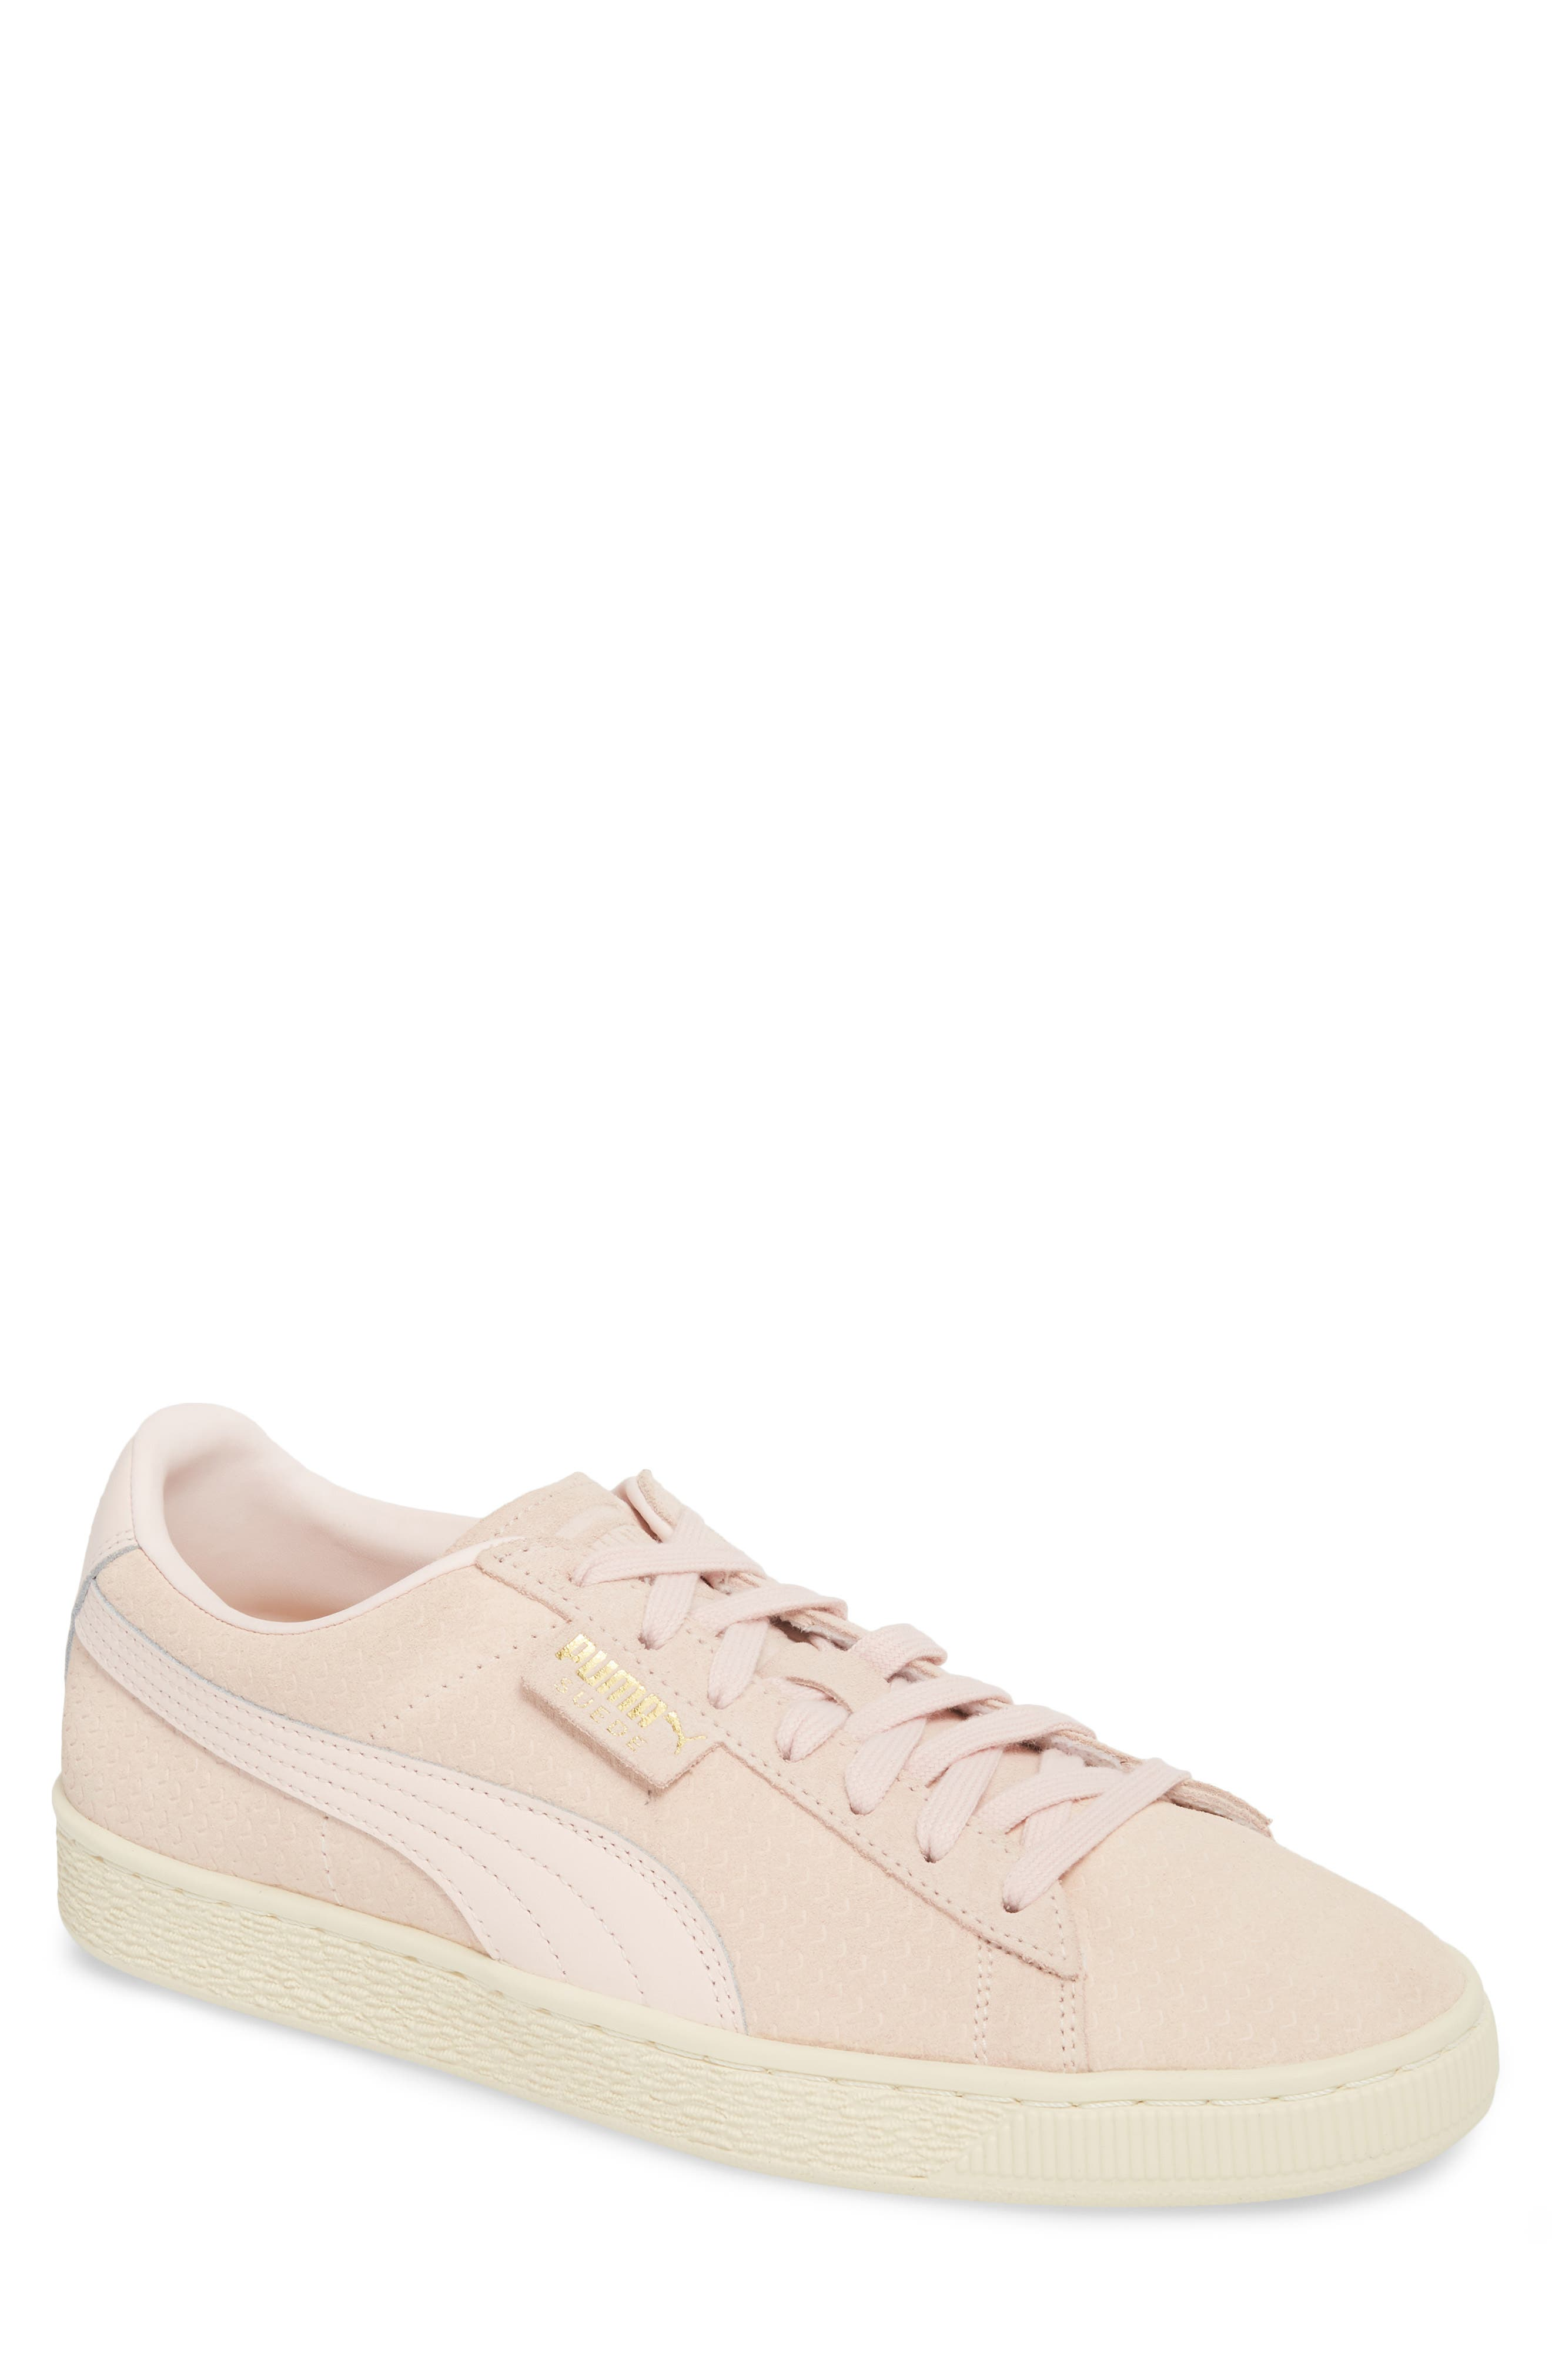 Suede Classic Perforation Sneaker,                             Main thumbnail 1, color,                             Pearl/ Whisper White Suede